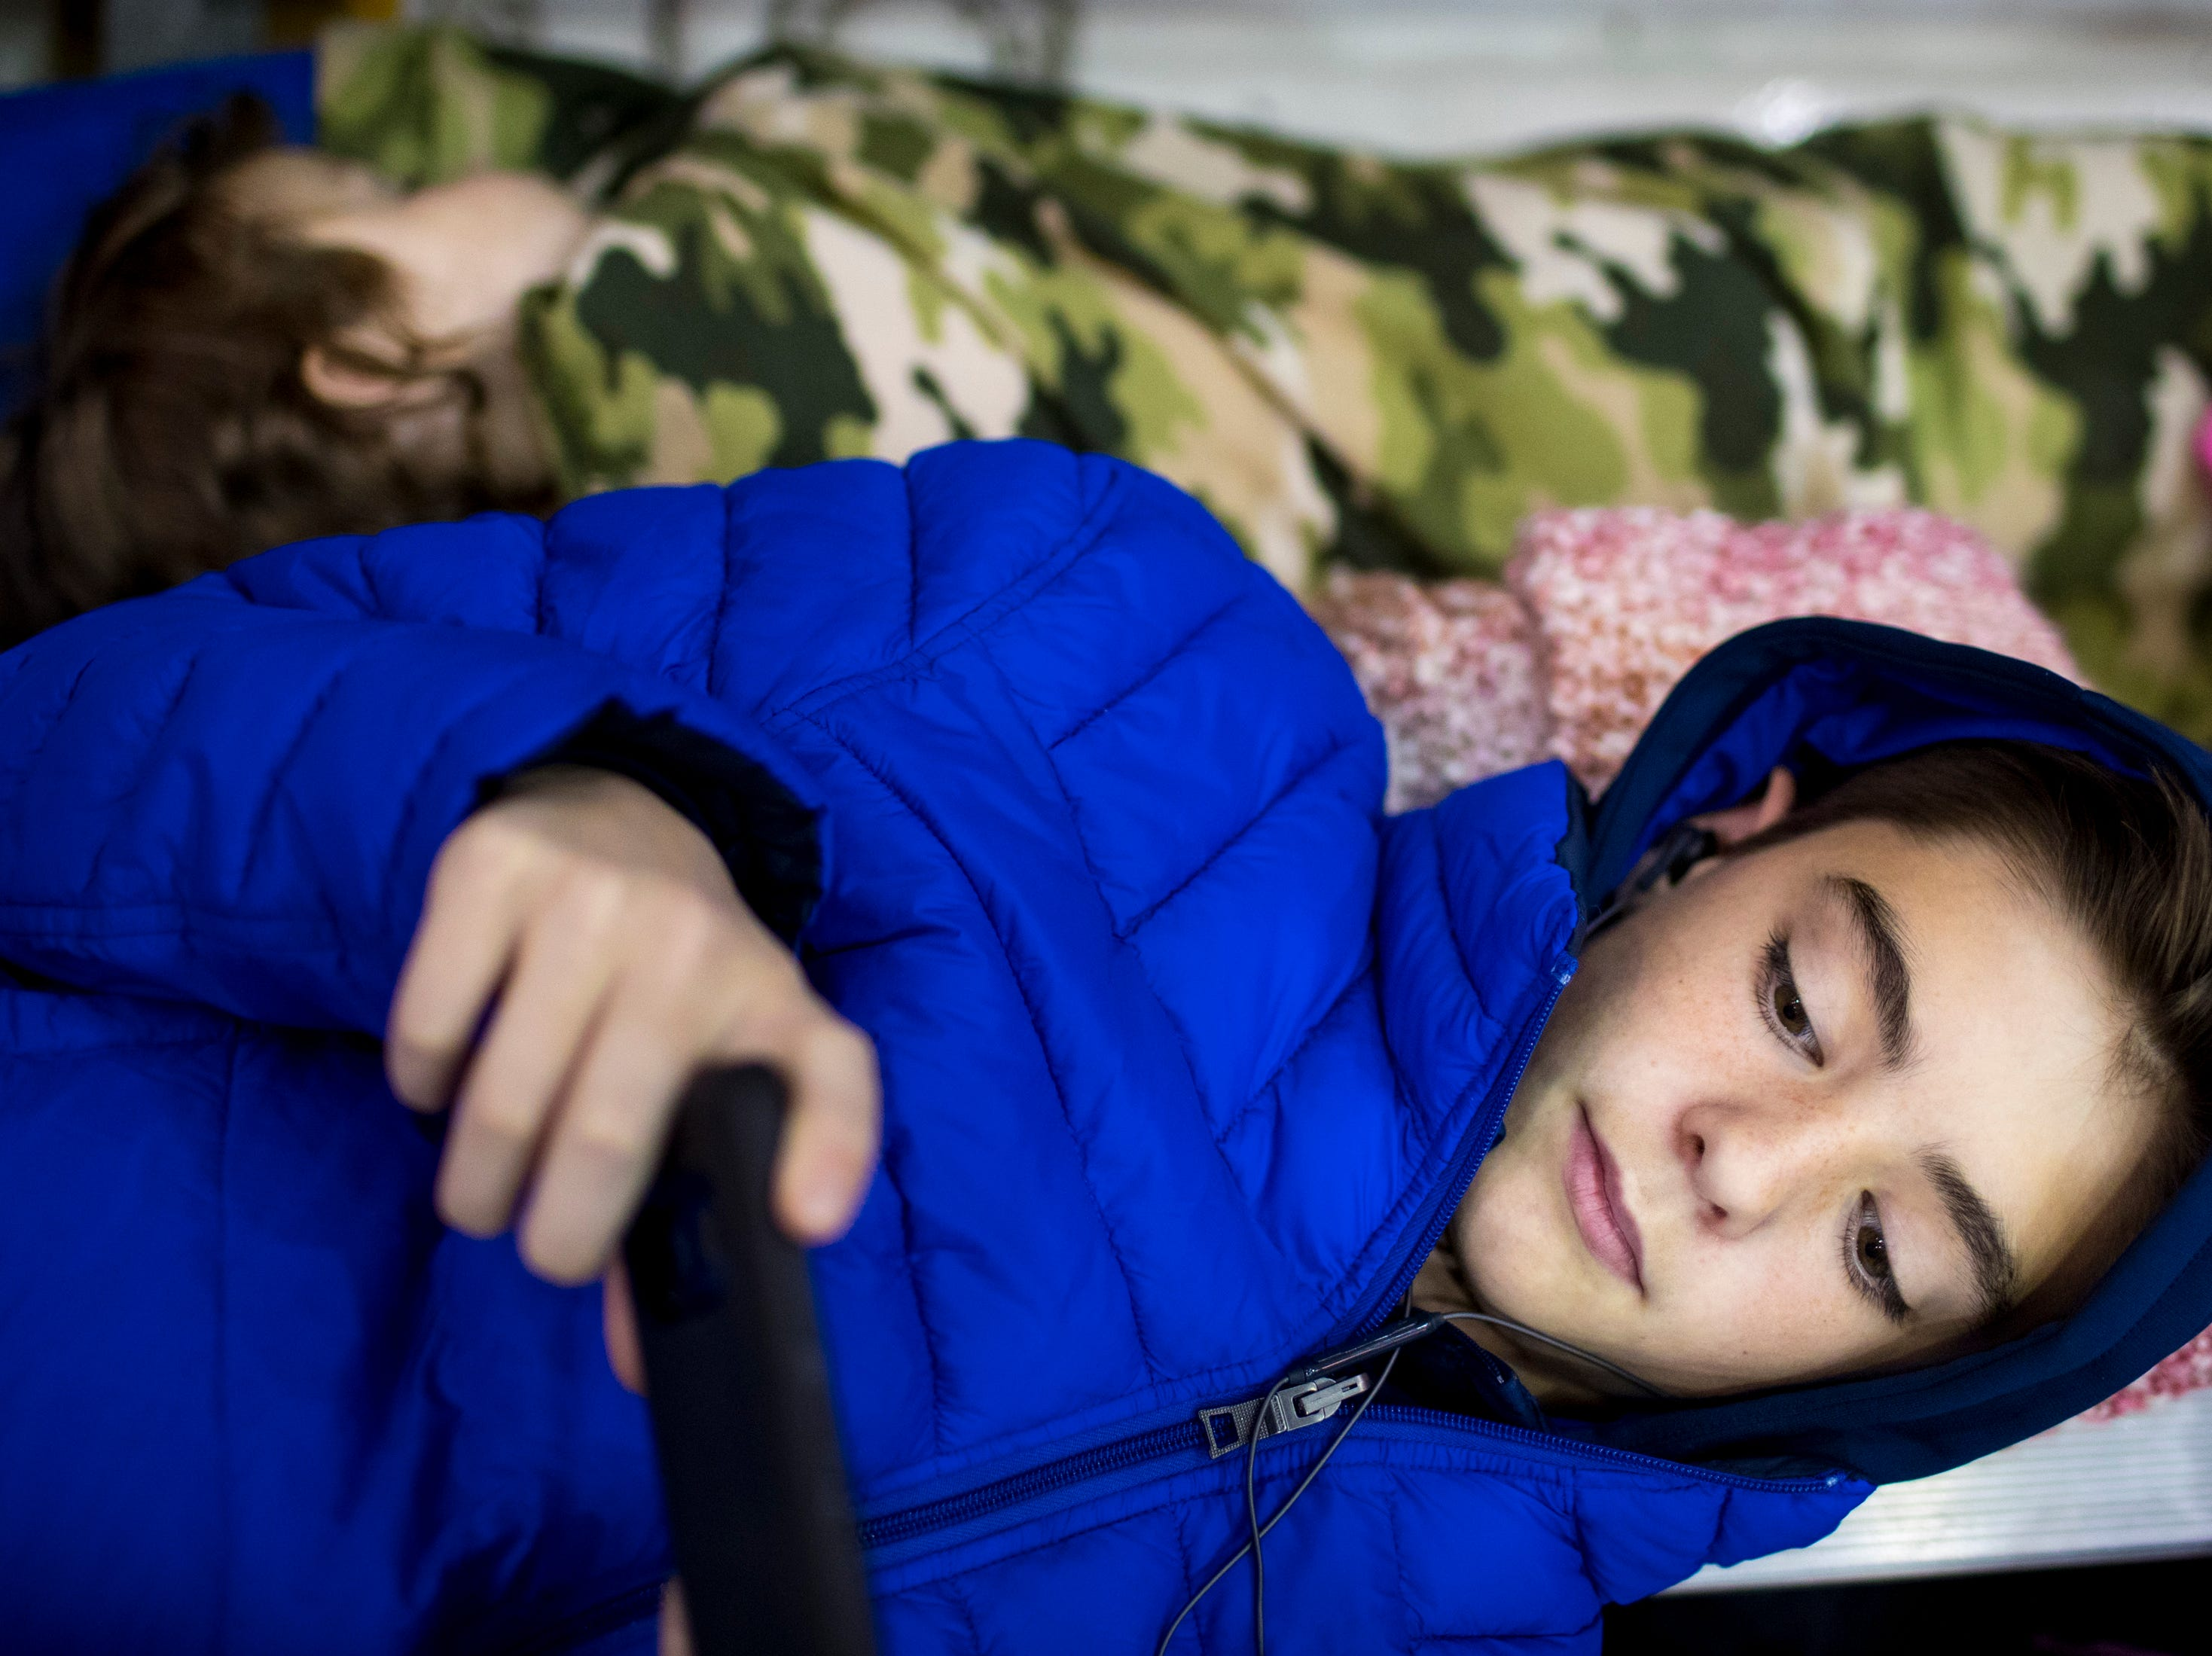 Ethan Miller, 13, watches Netflix on his phone as his sister Carmella Egner sleeps, while waiting for the plane carrying their father, 1st Lt. Justin Egner, to arrive during the welcome home ceremony for the 2nd Battalion, 44th Air Defense Artillery Regiment and 101st Airborne Division at Fort Campbell in the early hours of Monday, Nov. 19, 2018. The soldiers were returning from a 9-month deployment in Afghanistan.